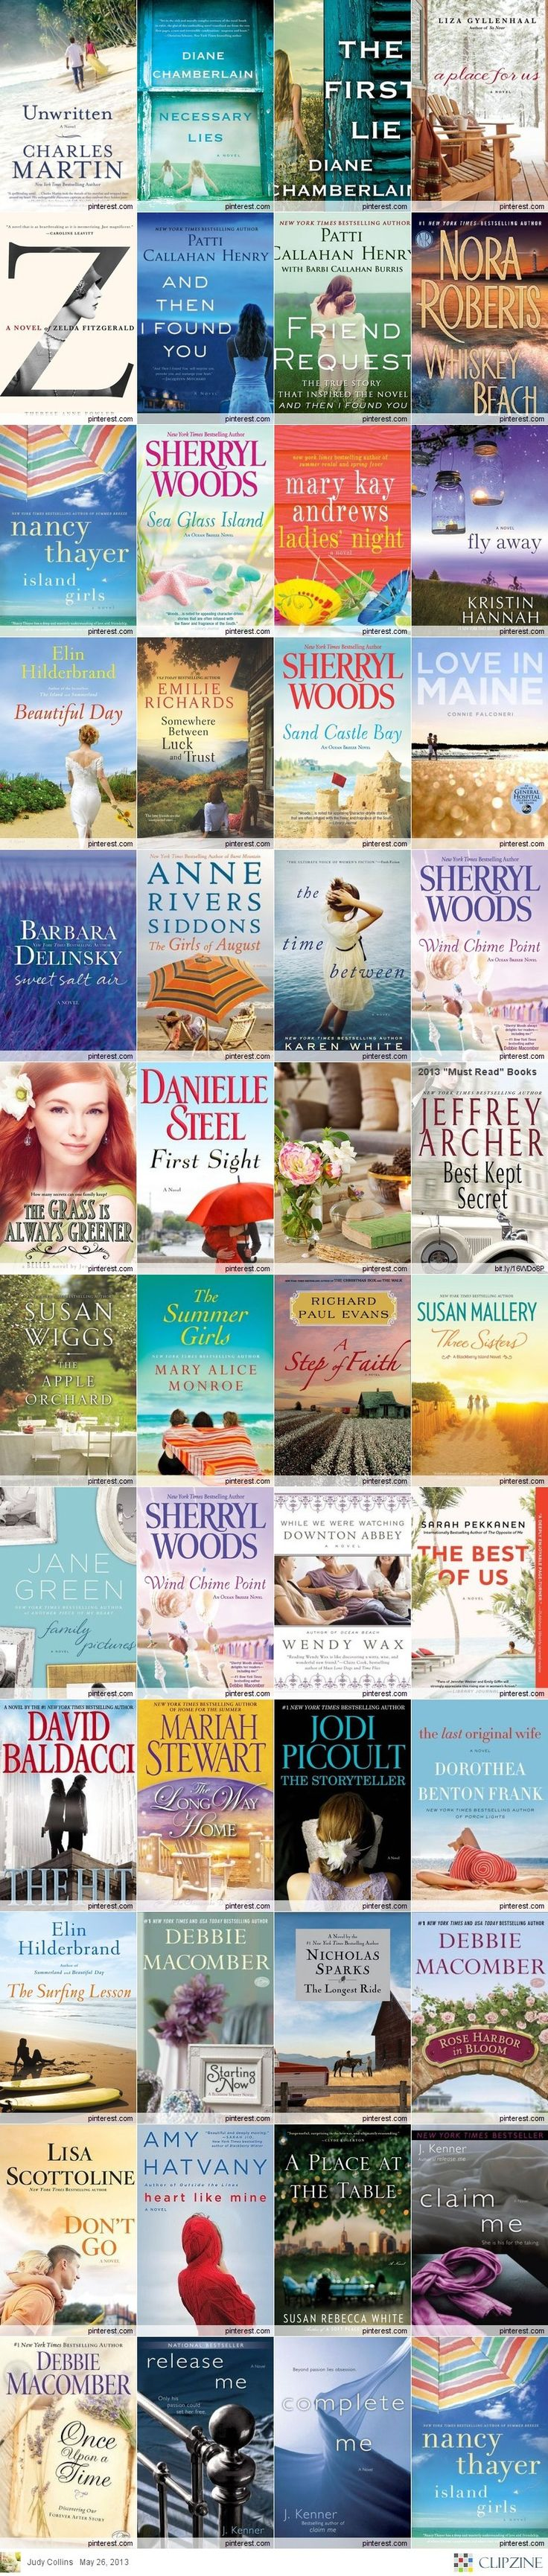 2013 Must Read Books - I'll need to add some of these to my reading list.  Can't wait to read Fly Away!